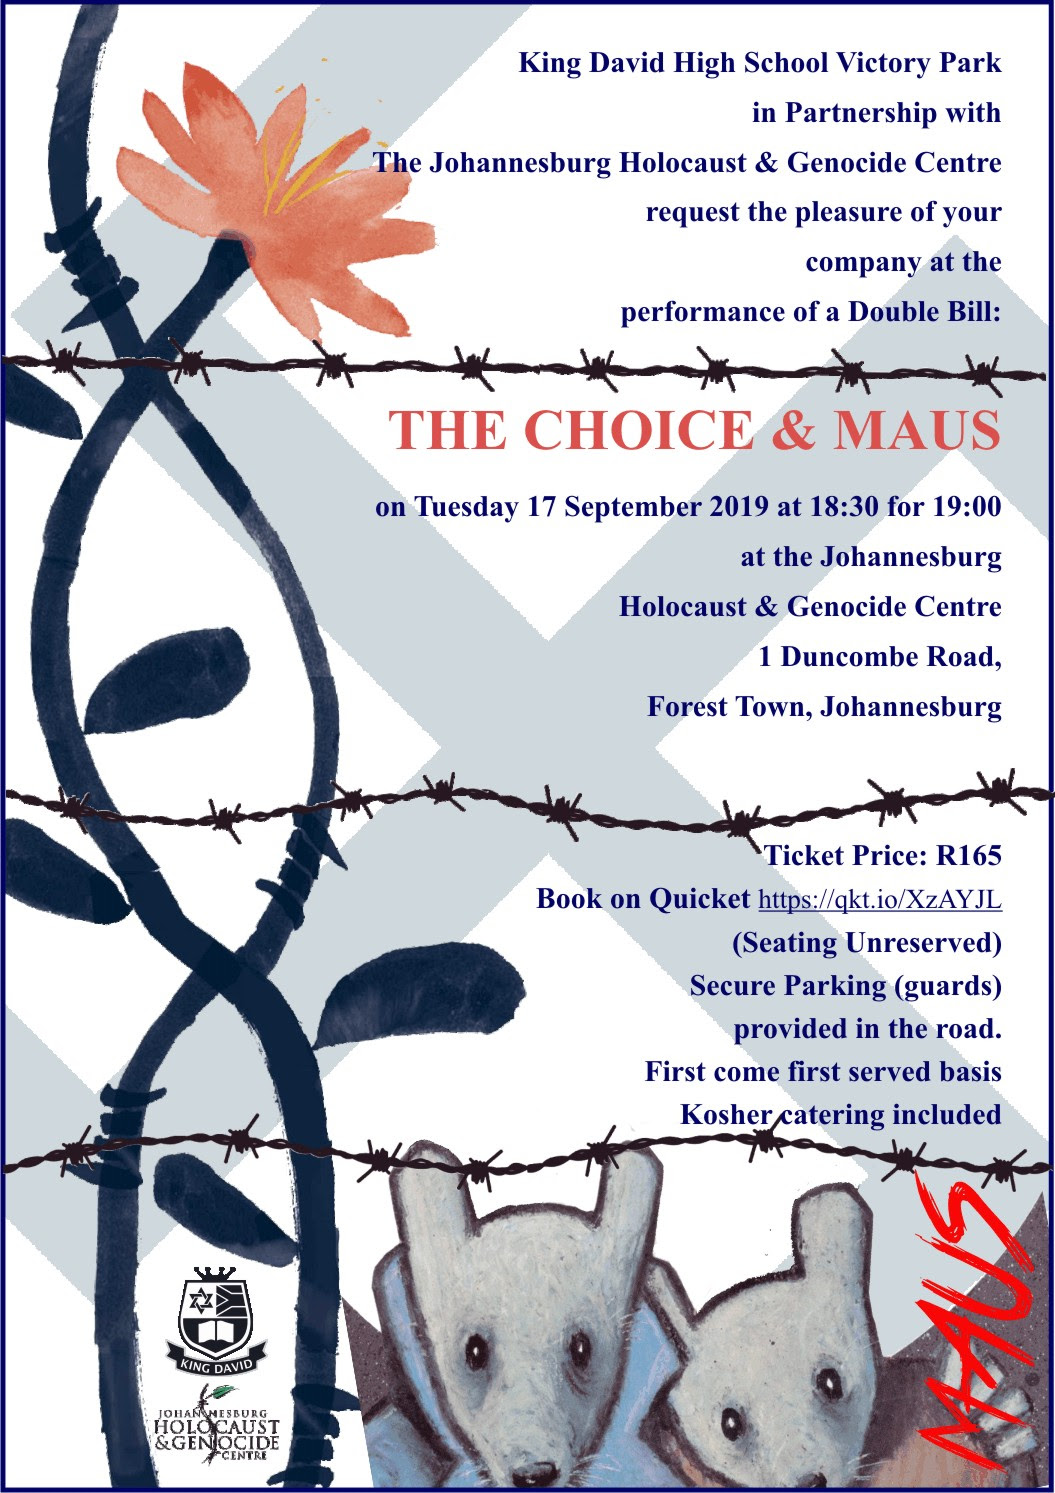 King David Victory Park & the Holocaust center : The choice &Maus